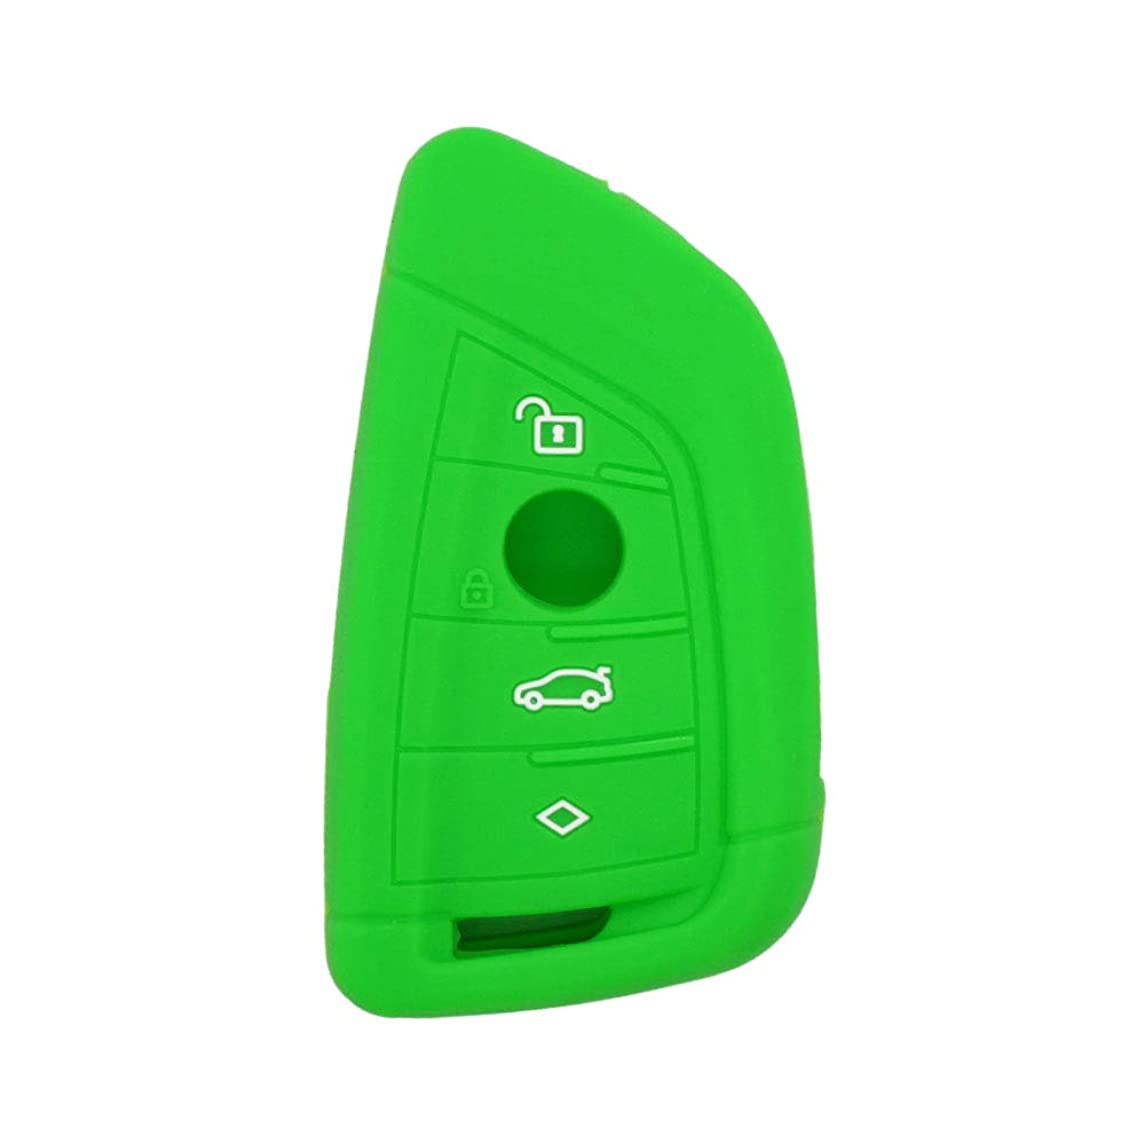 SEGADEN Silicone Cover Protector Case Skin Jacket fit for BMW X1 X3 X4 X5 X6 4 Button Smart Remote Key Fob CV4907 Light Green